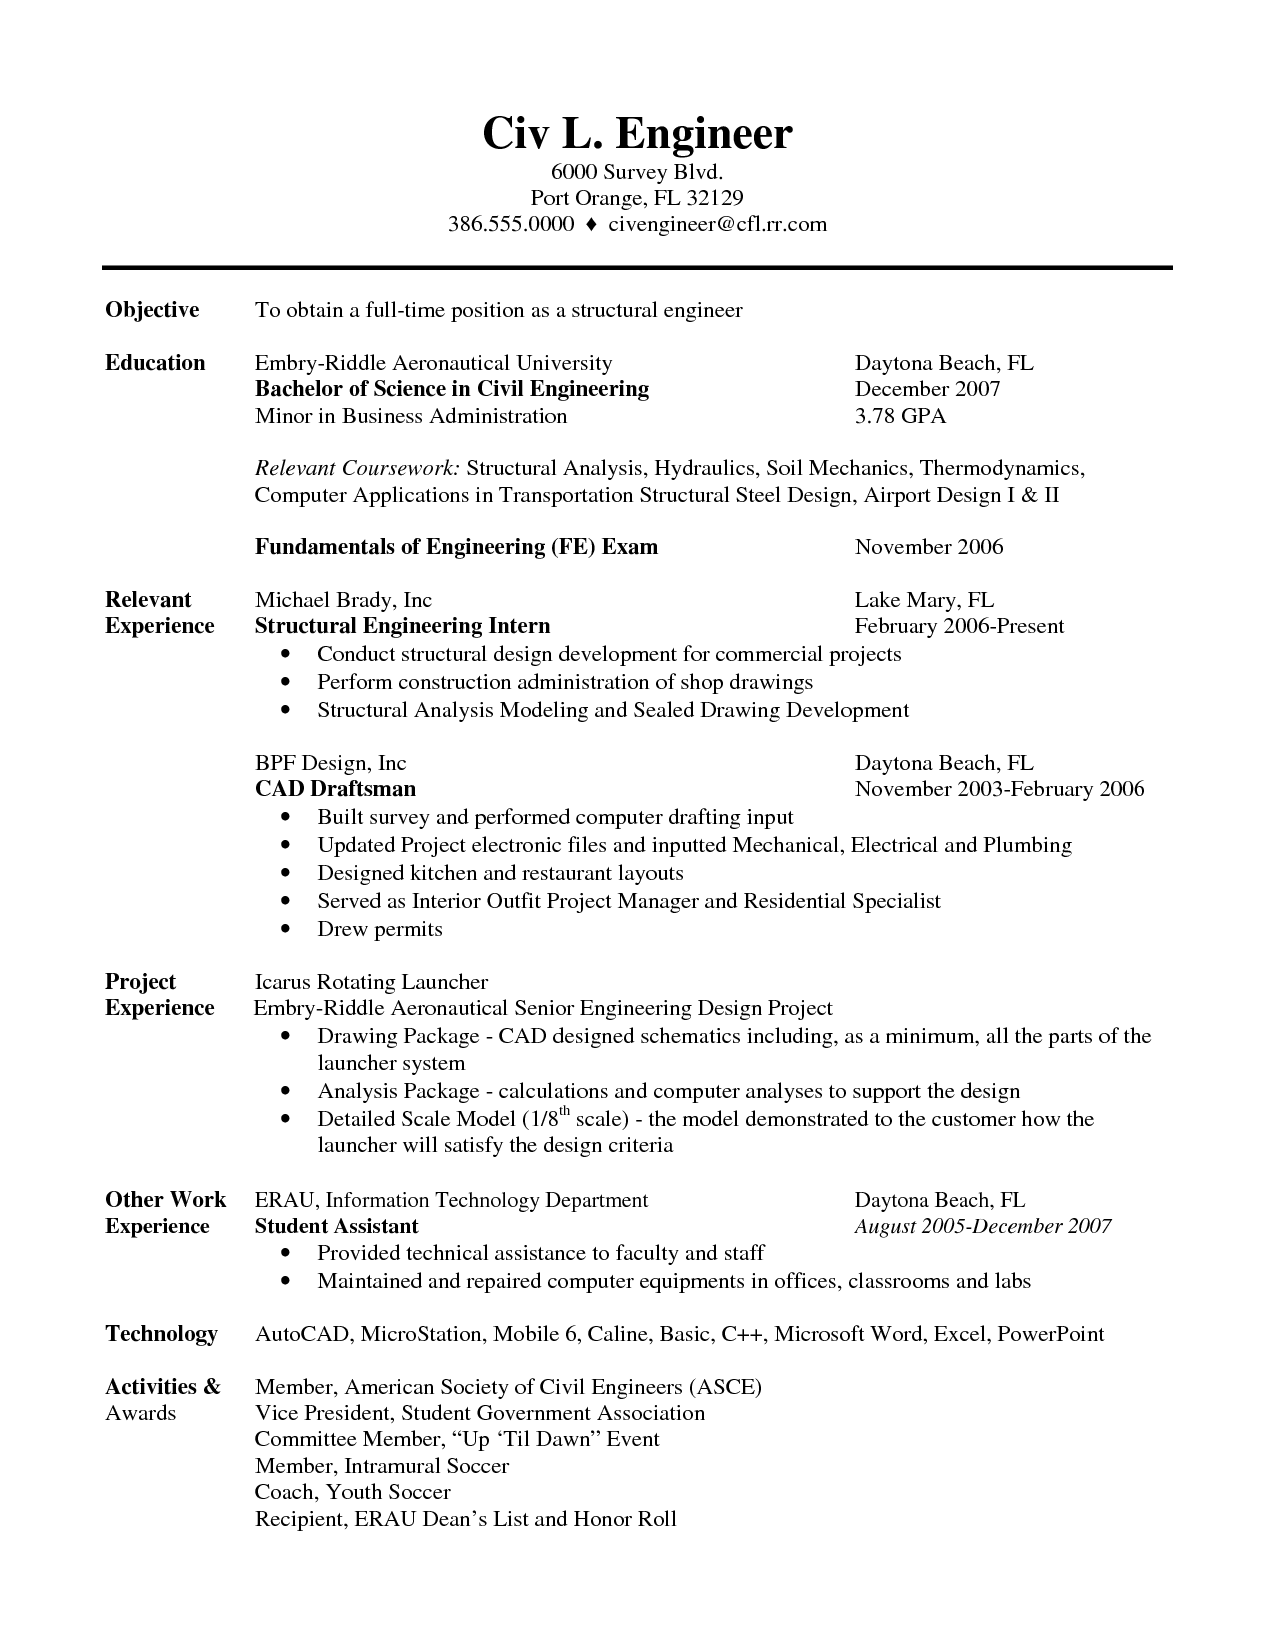 Current College Student Resume A Properly Organized Resume Saves Potential Employers Time When